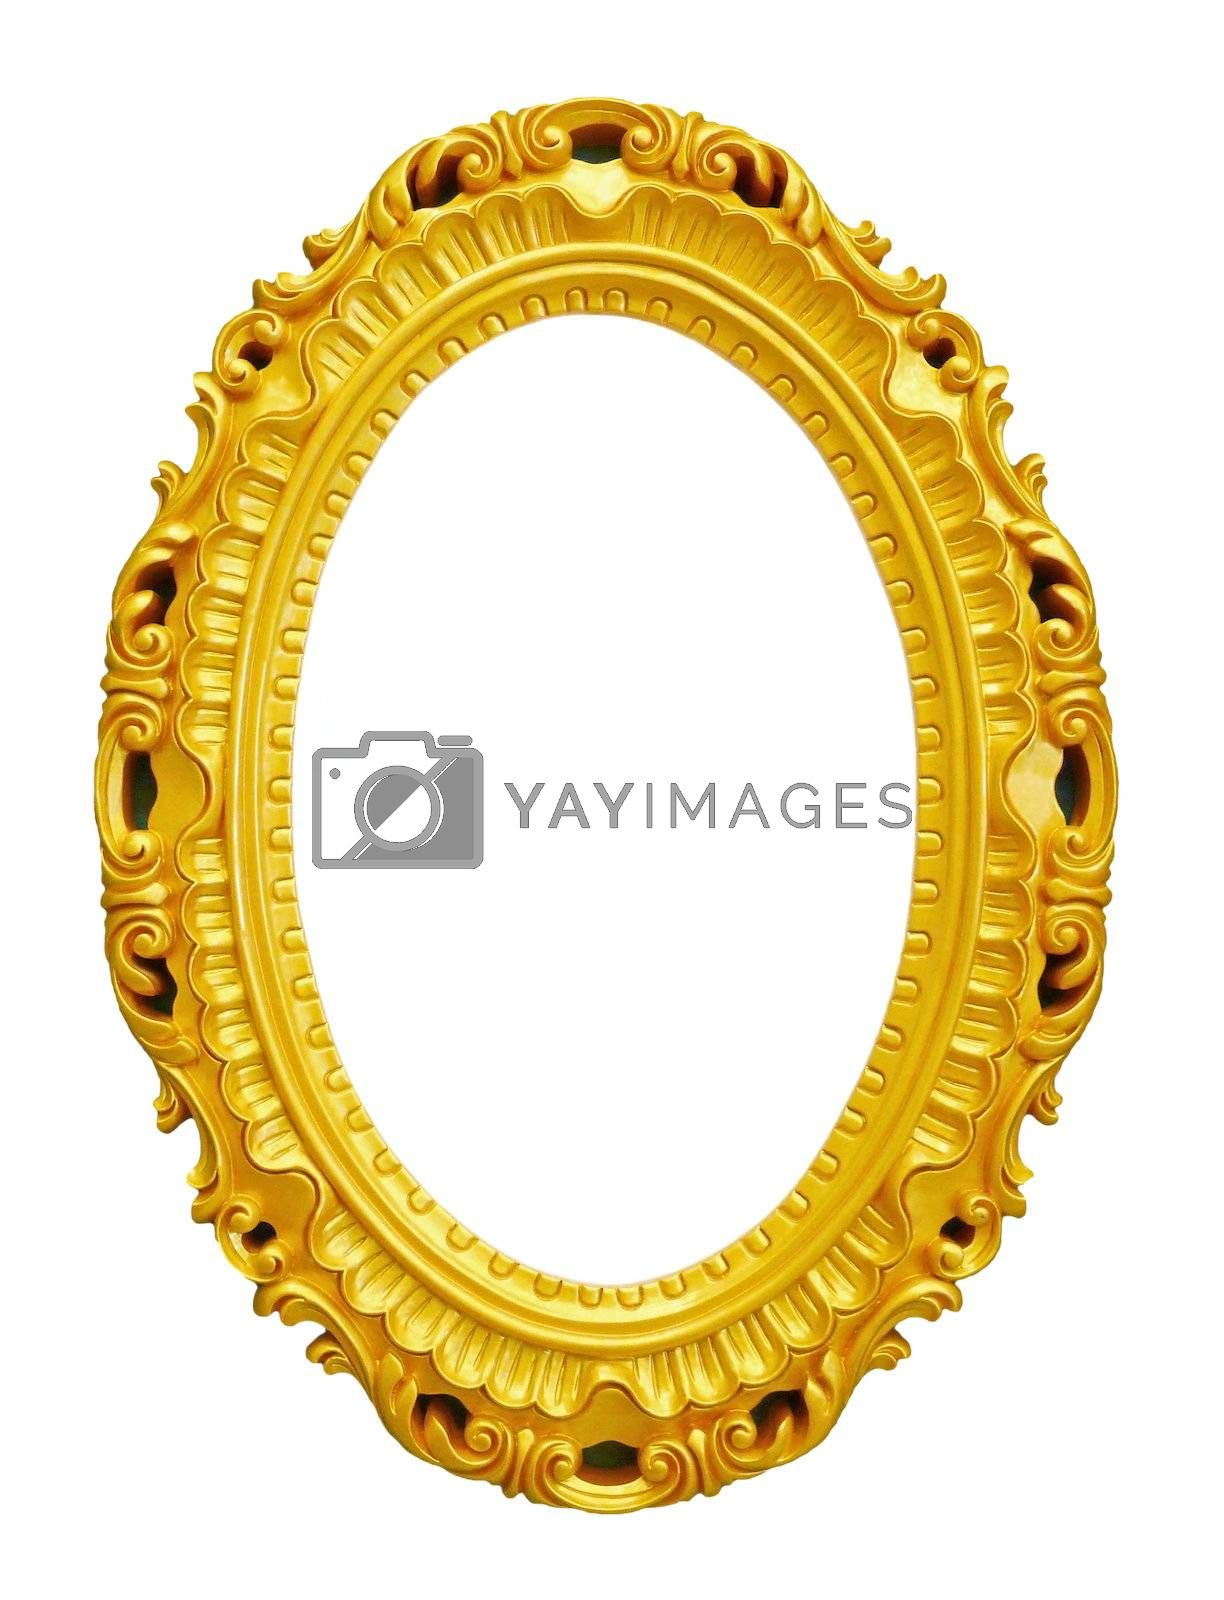 Golden vintage frame isolated on white background